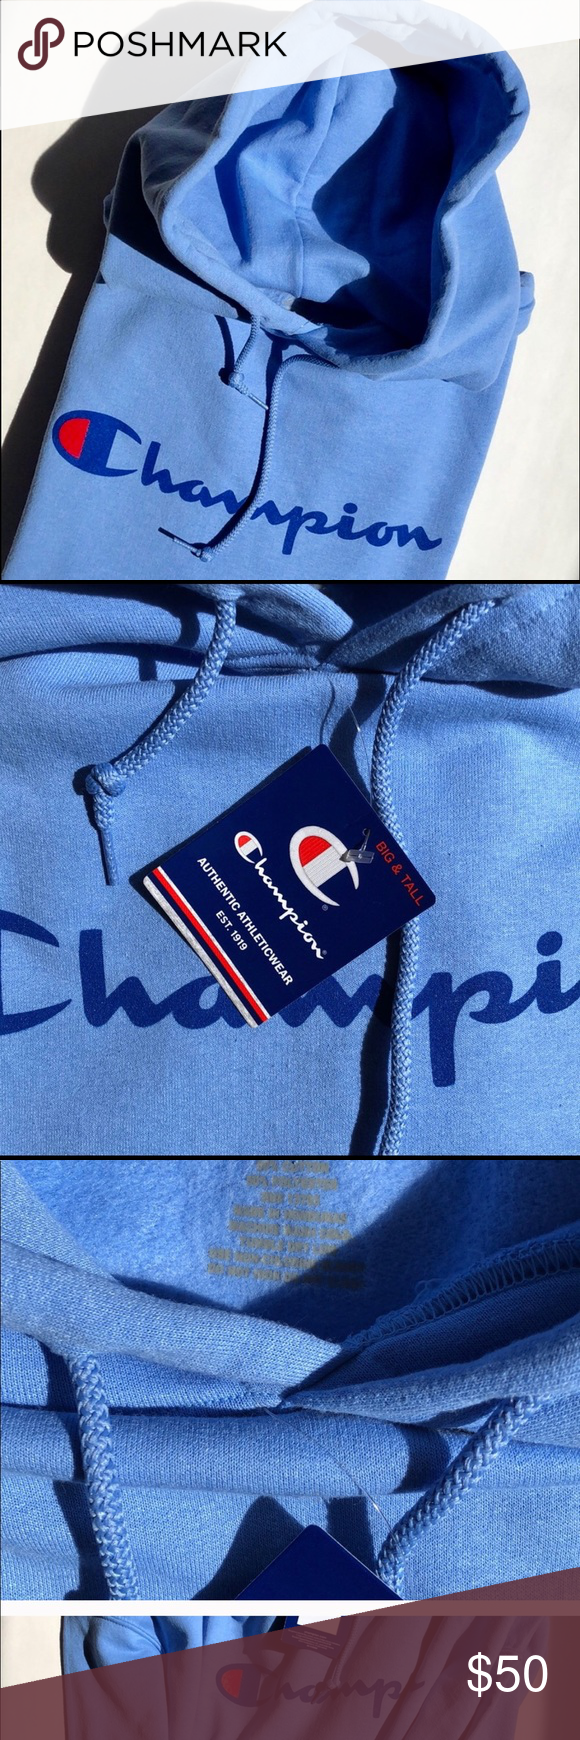 Champion Hoodie Gorgeous Blue and Red  Champion Hoodie  Authentic Size 1x  Cozy, warm and on Trend! Champion Tops Sweatshirts & Hoodies #championhoodie